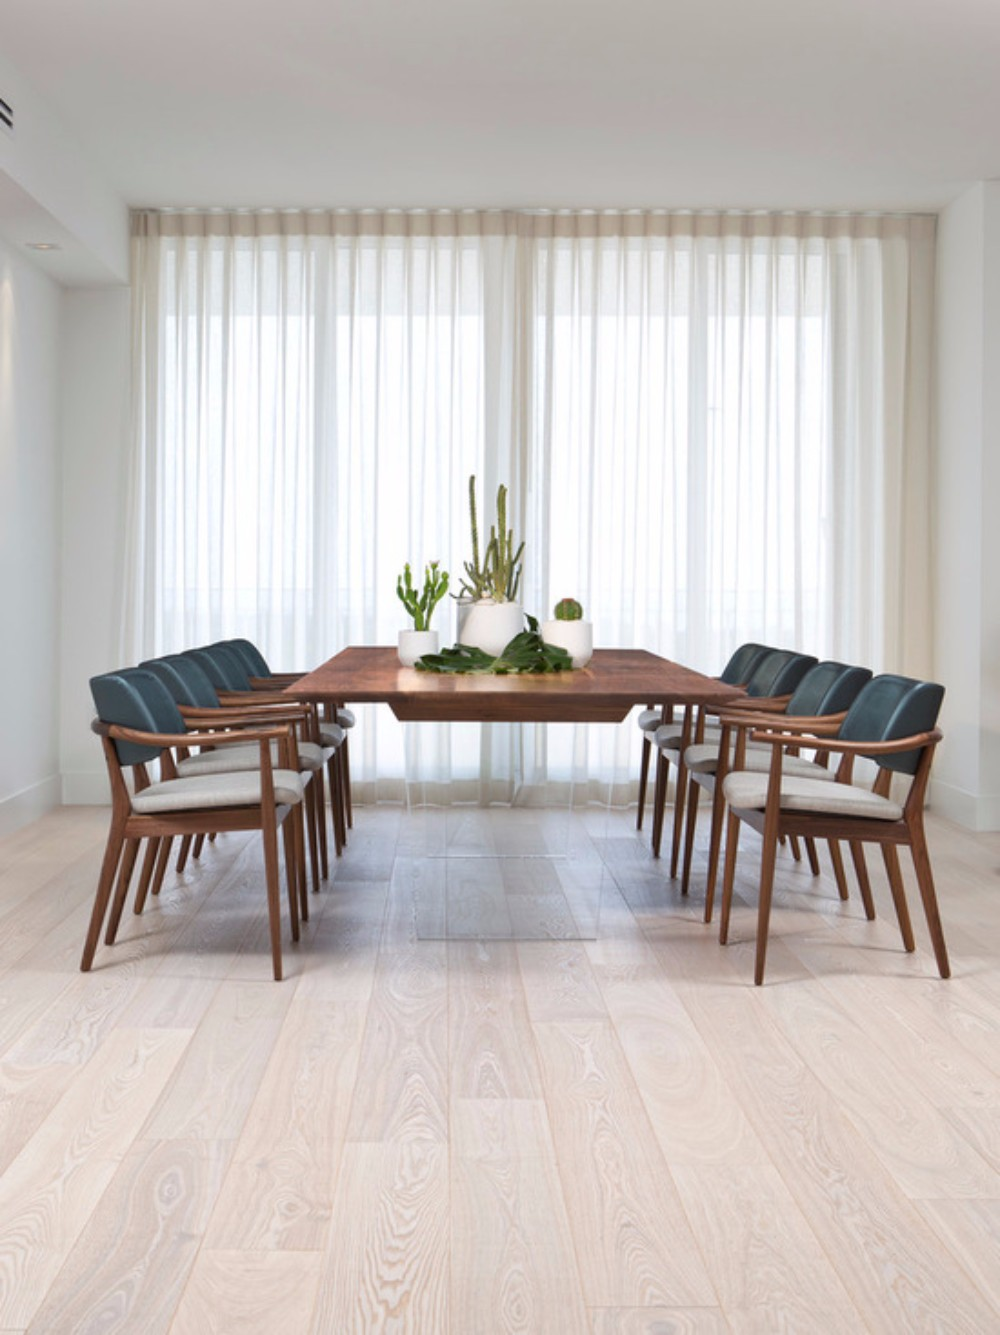 Dining Room Projects By Patricia Urquiola